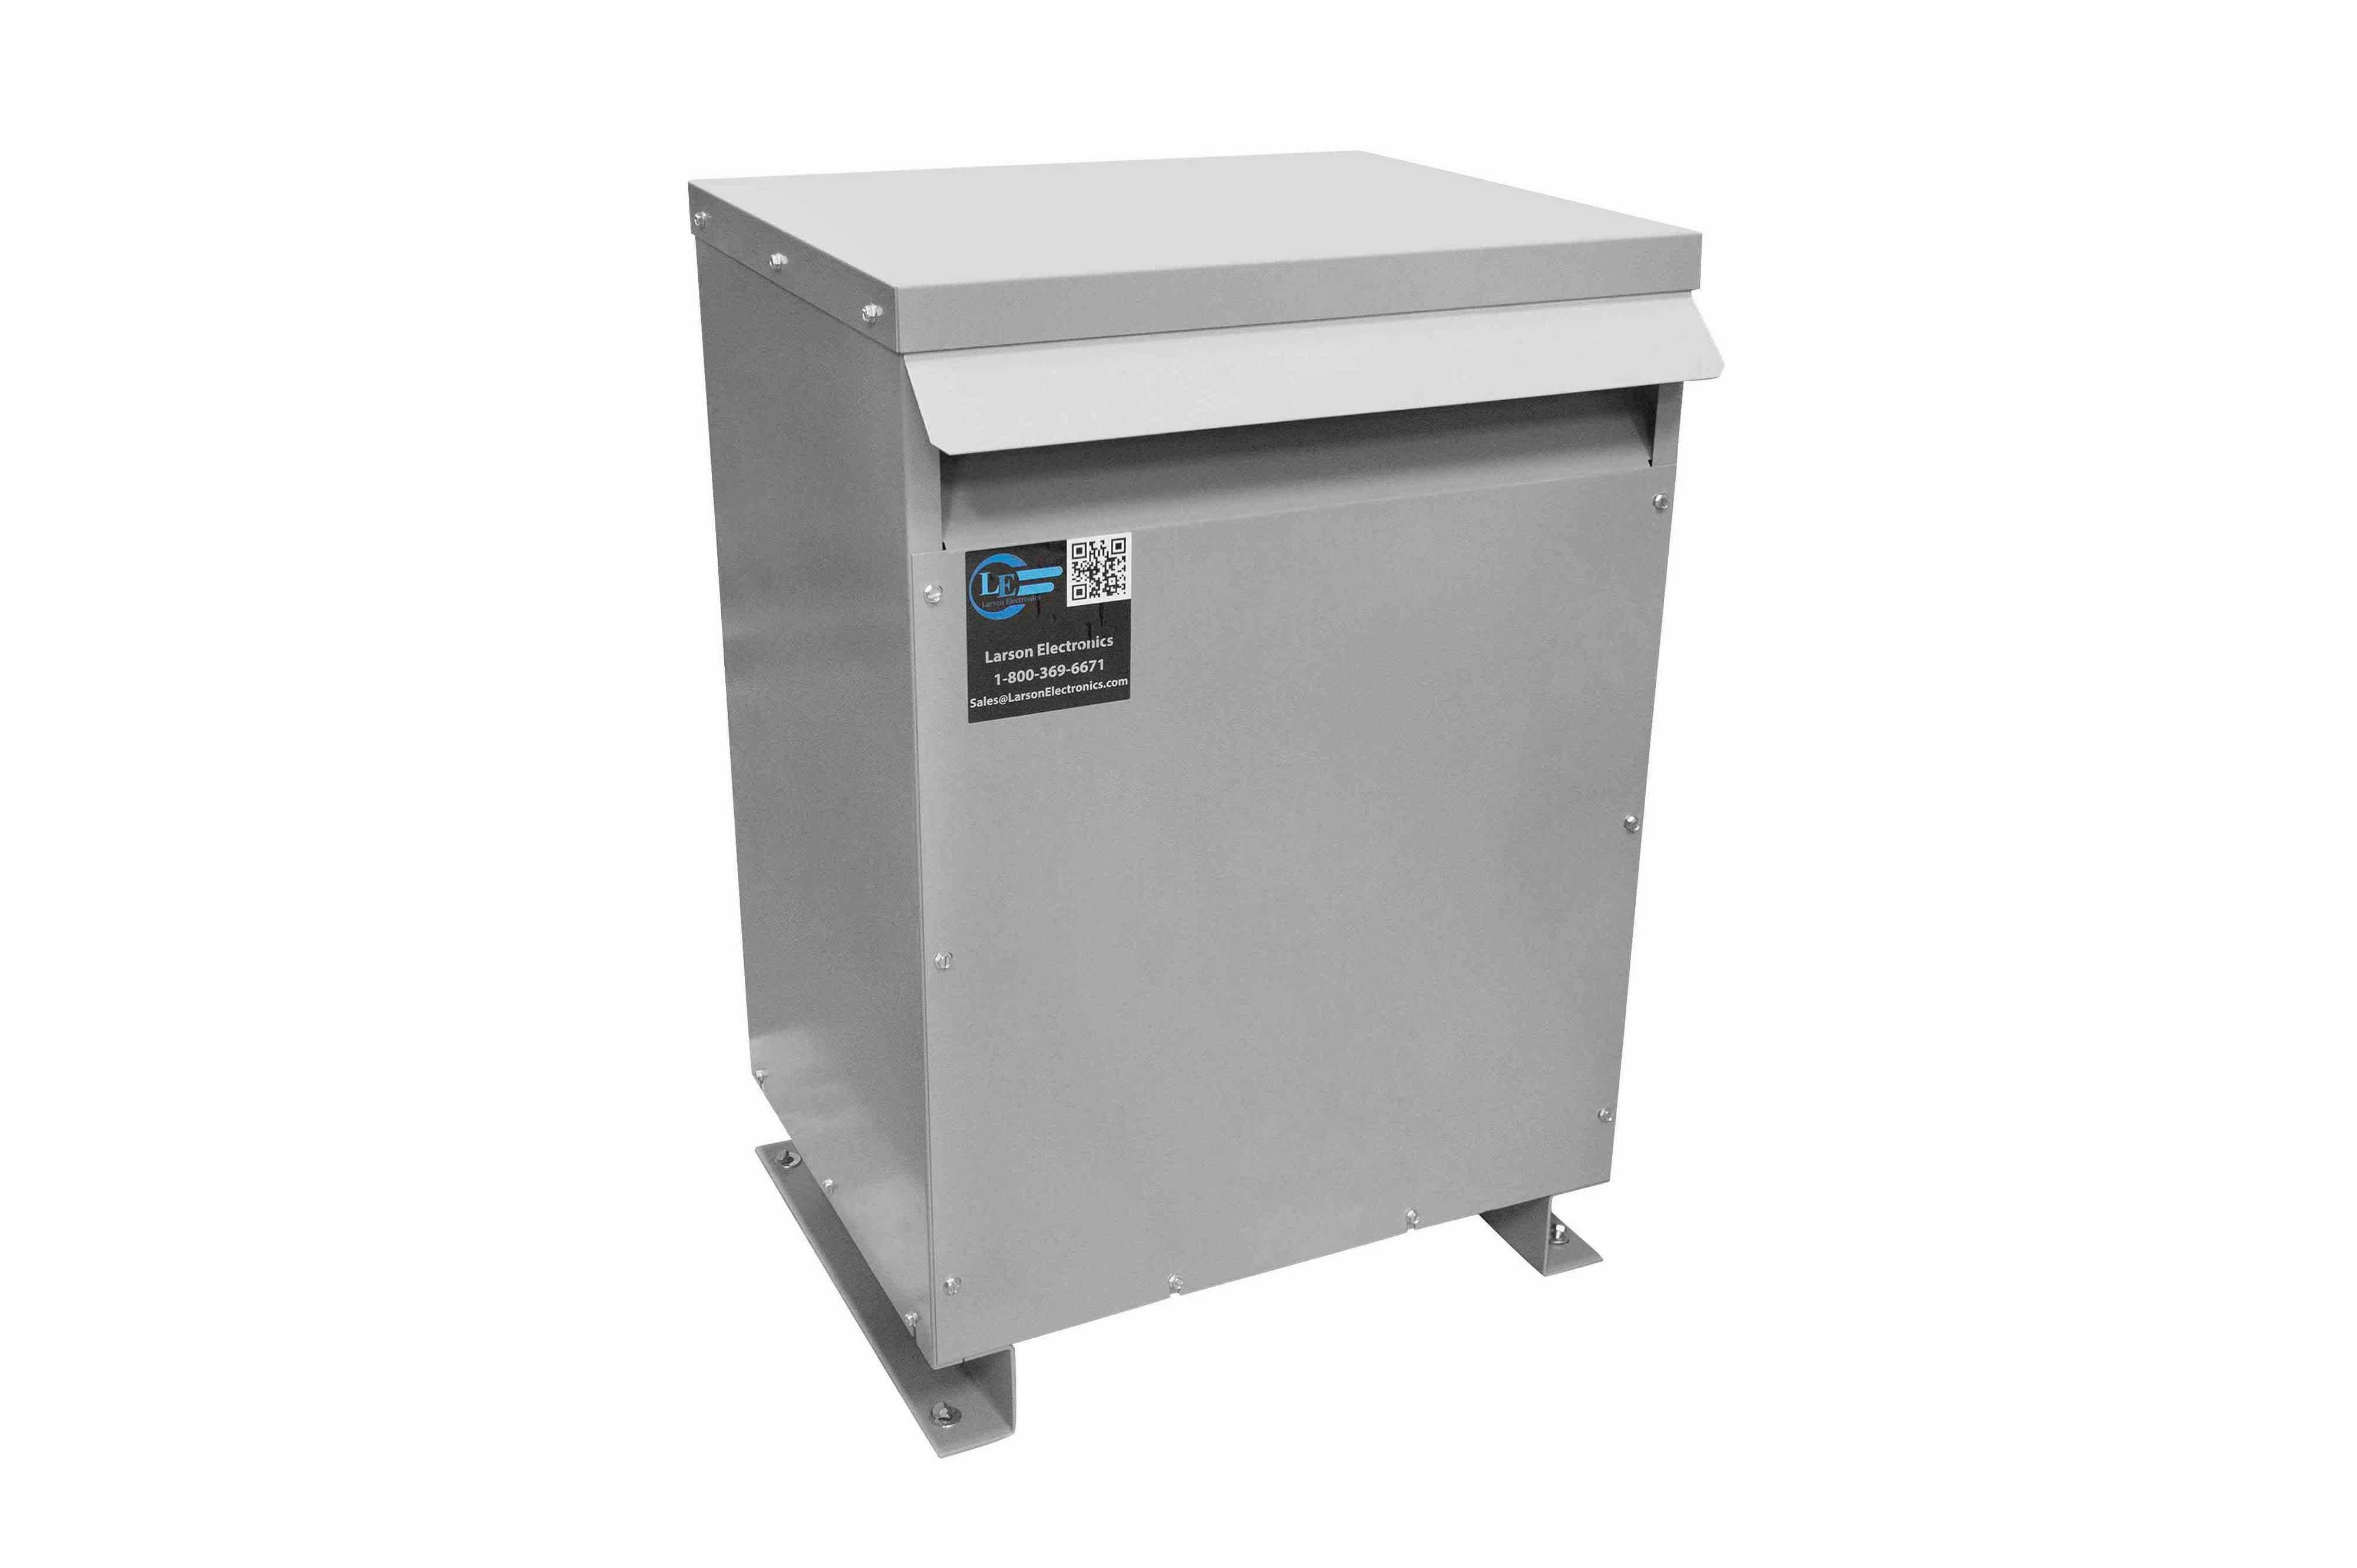 12 kVA 3PH Isolation Transformer, 460V Wye Primary, 208Y/120 Wye-N Secondary, N3R, Ventilated, 60 Hz